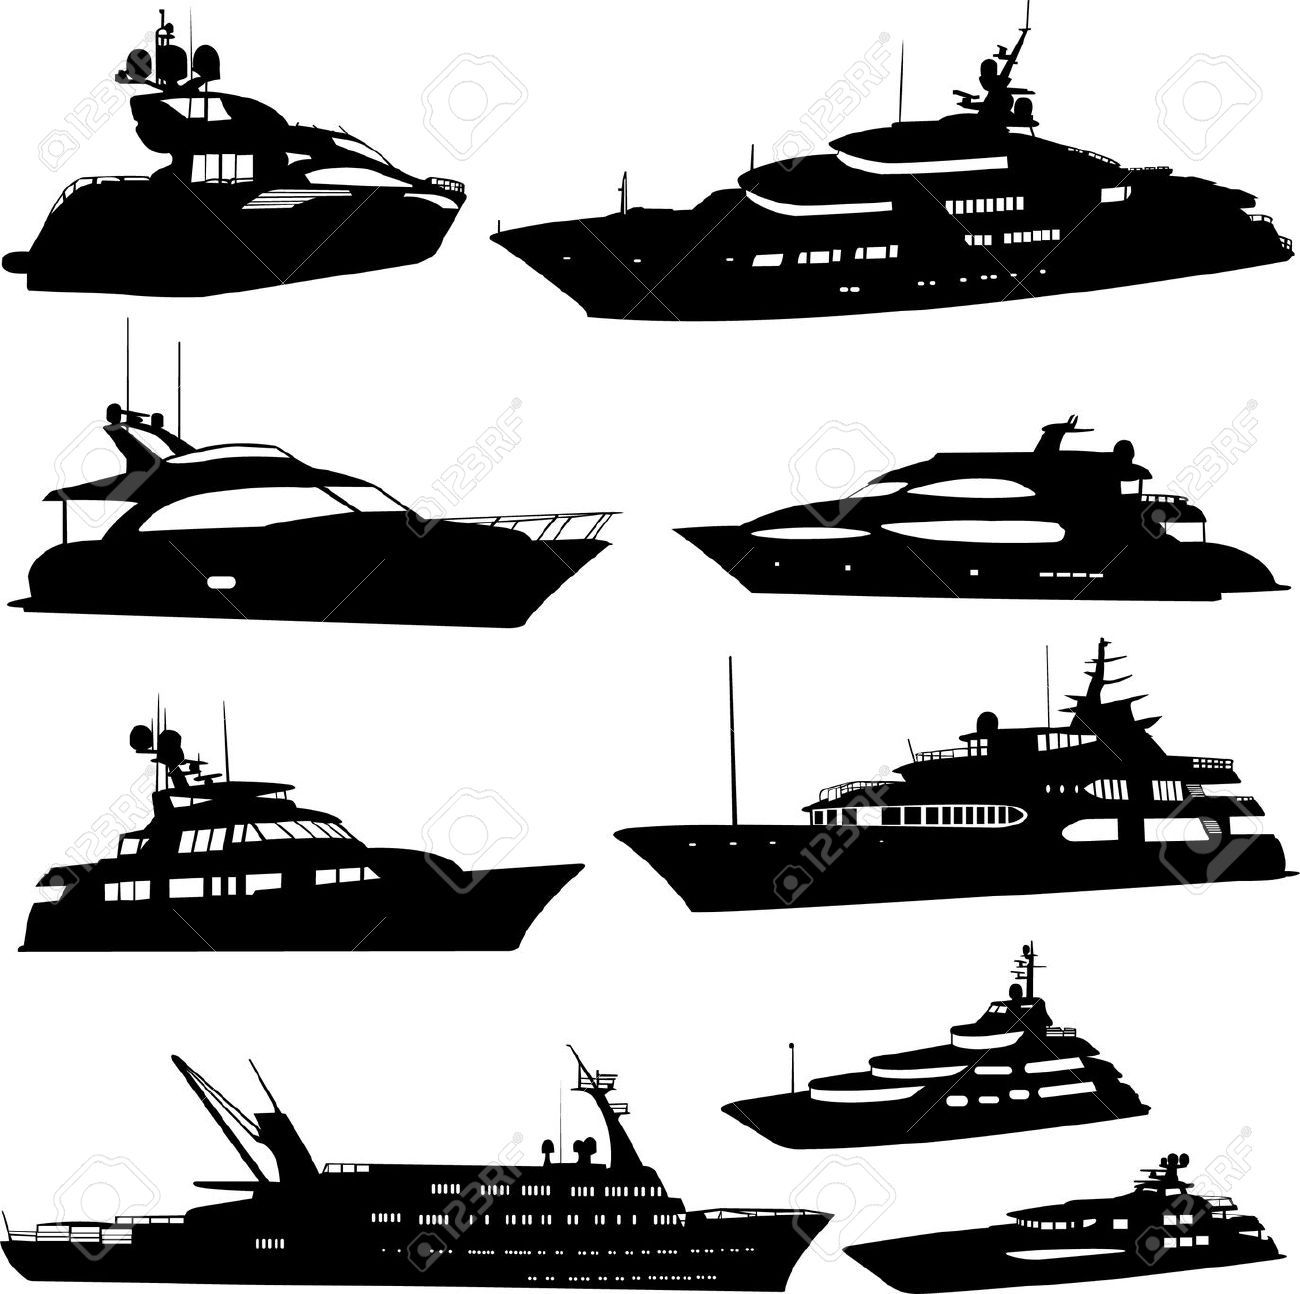 clipart library stock Yate con motor dise. Vector boat silhouette